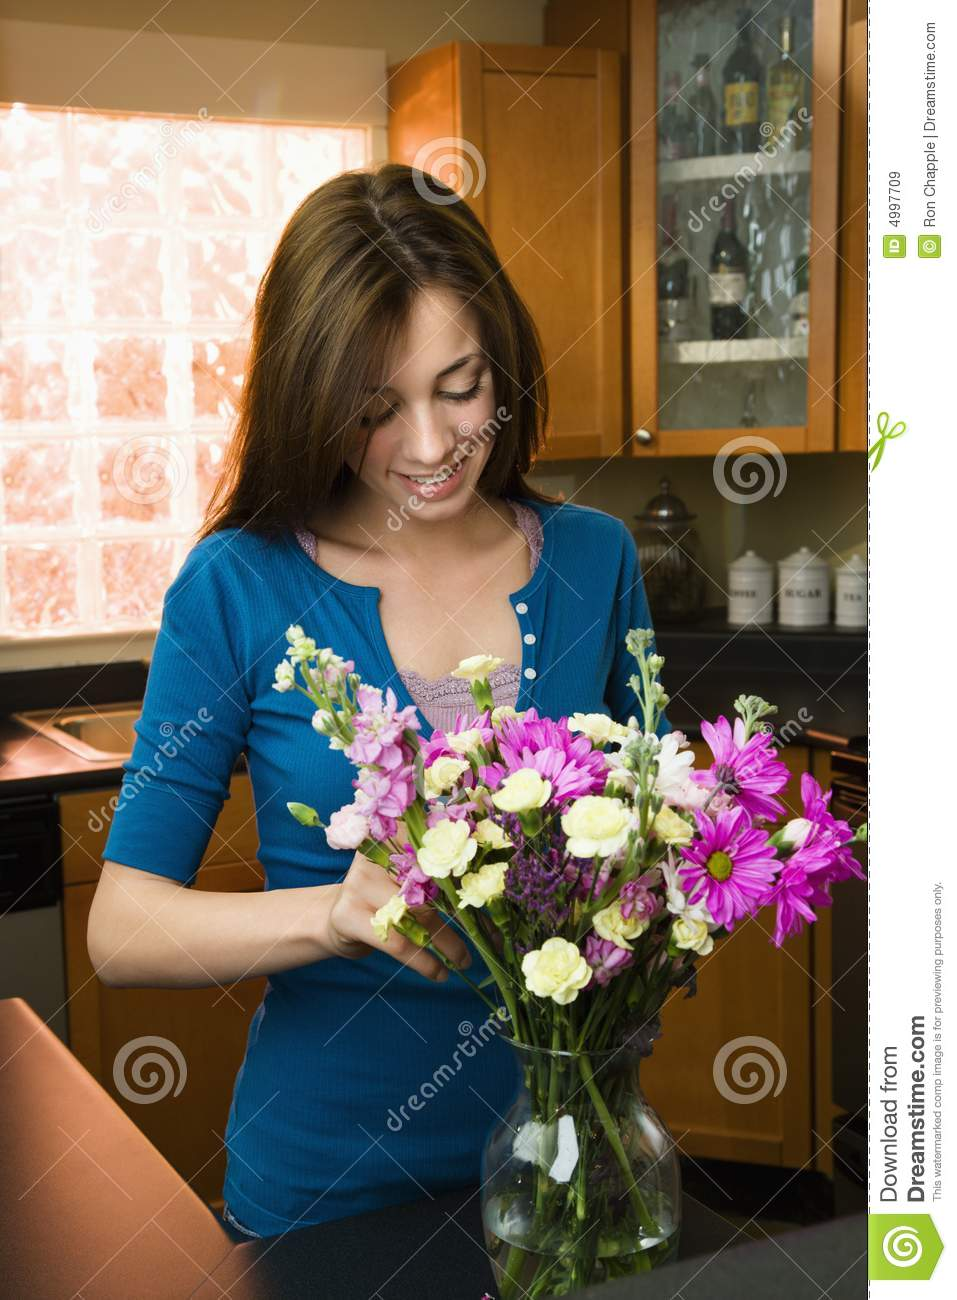 Woman putting flowers in vase stock image image of 080403d0040 woman putting flowers in vase reviewsmspy